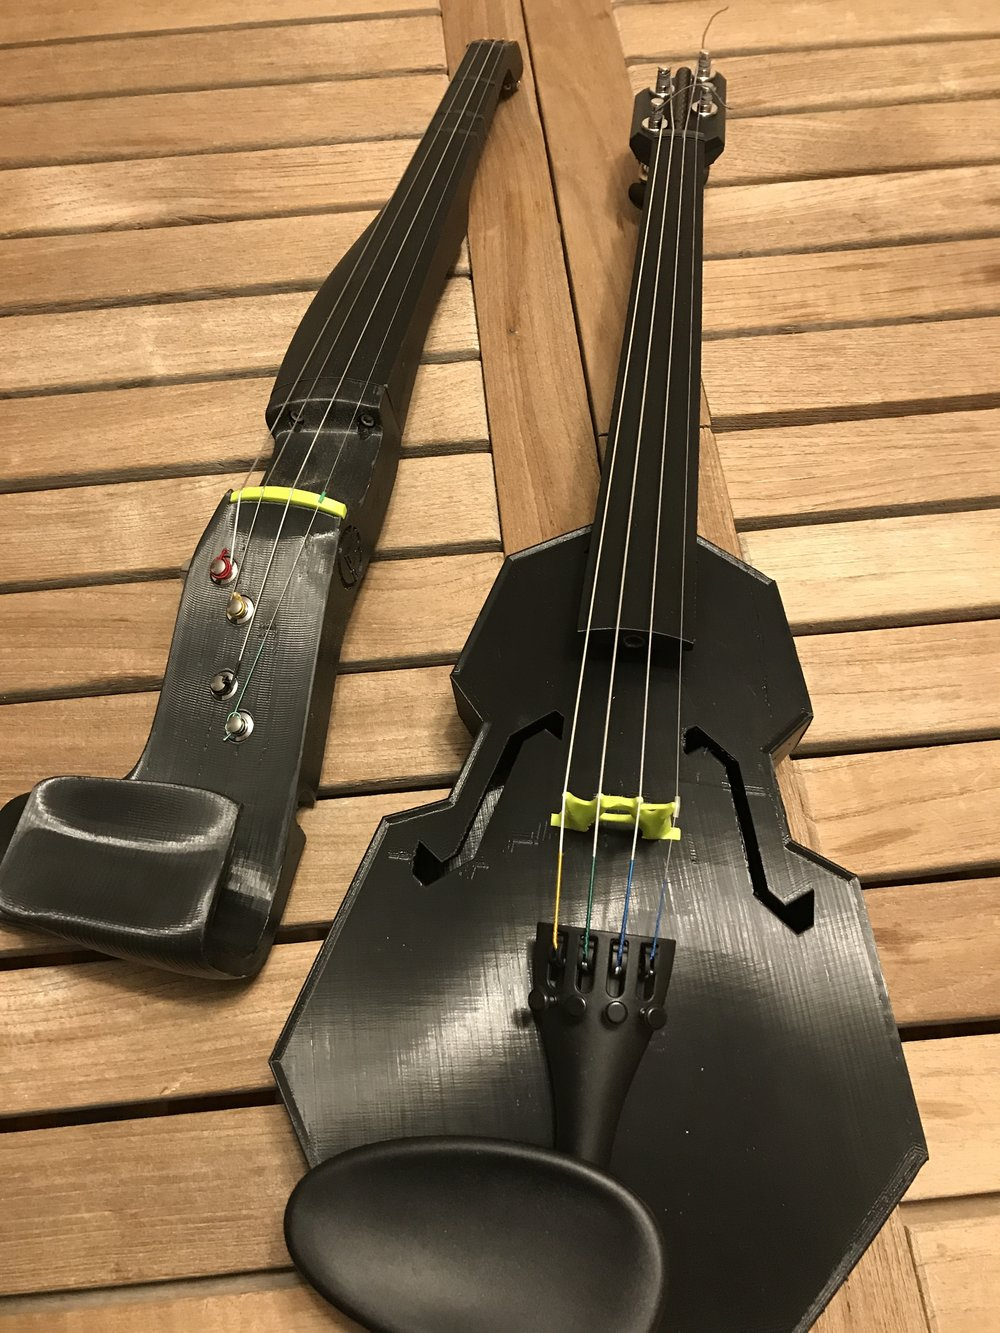 My silent F-F-Fiddle alongside its newest compadre — a lulzbot-colored Modular Fiddle. Both were designed by the brilliant Dave Perry.